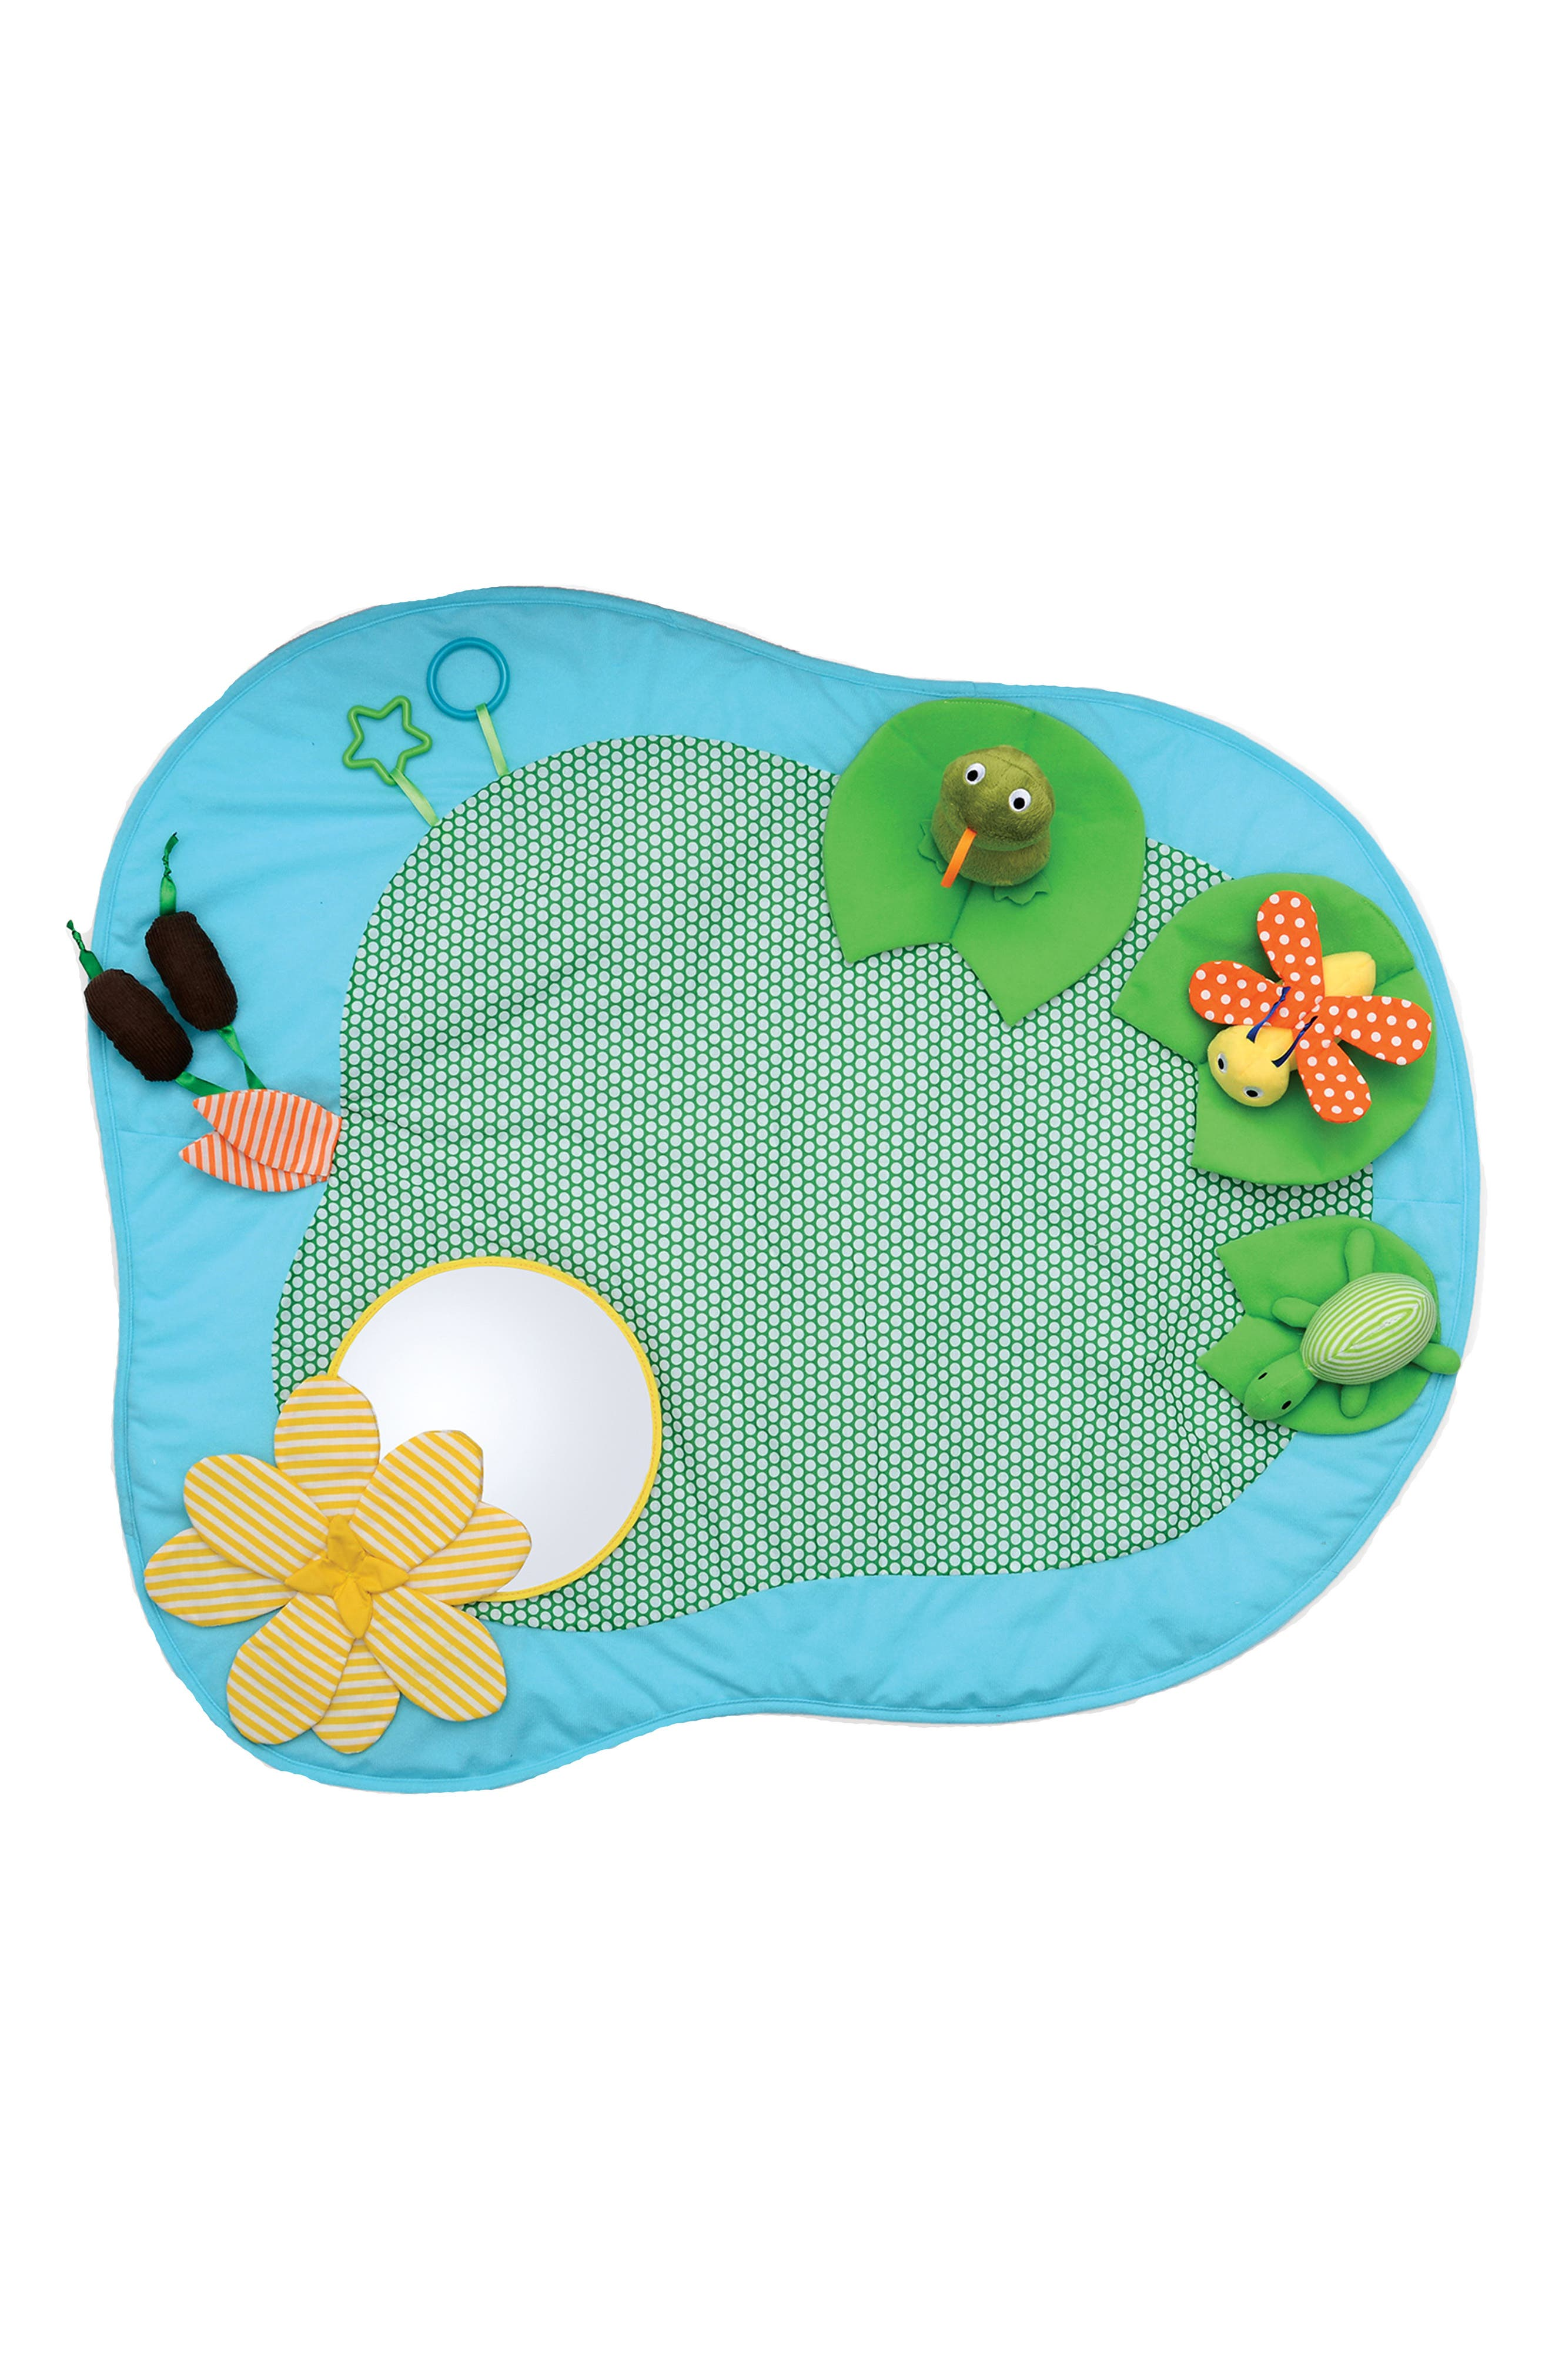 Playtime Pond Mat,                             Main thumbnail 1, color,                             400